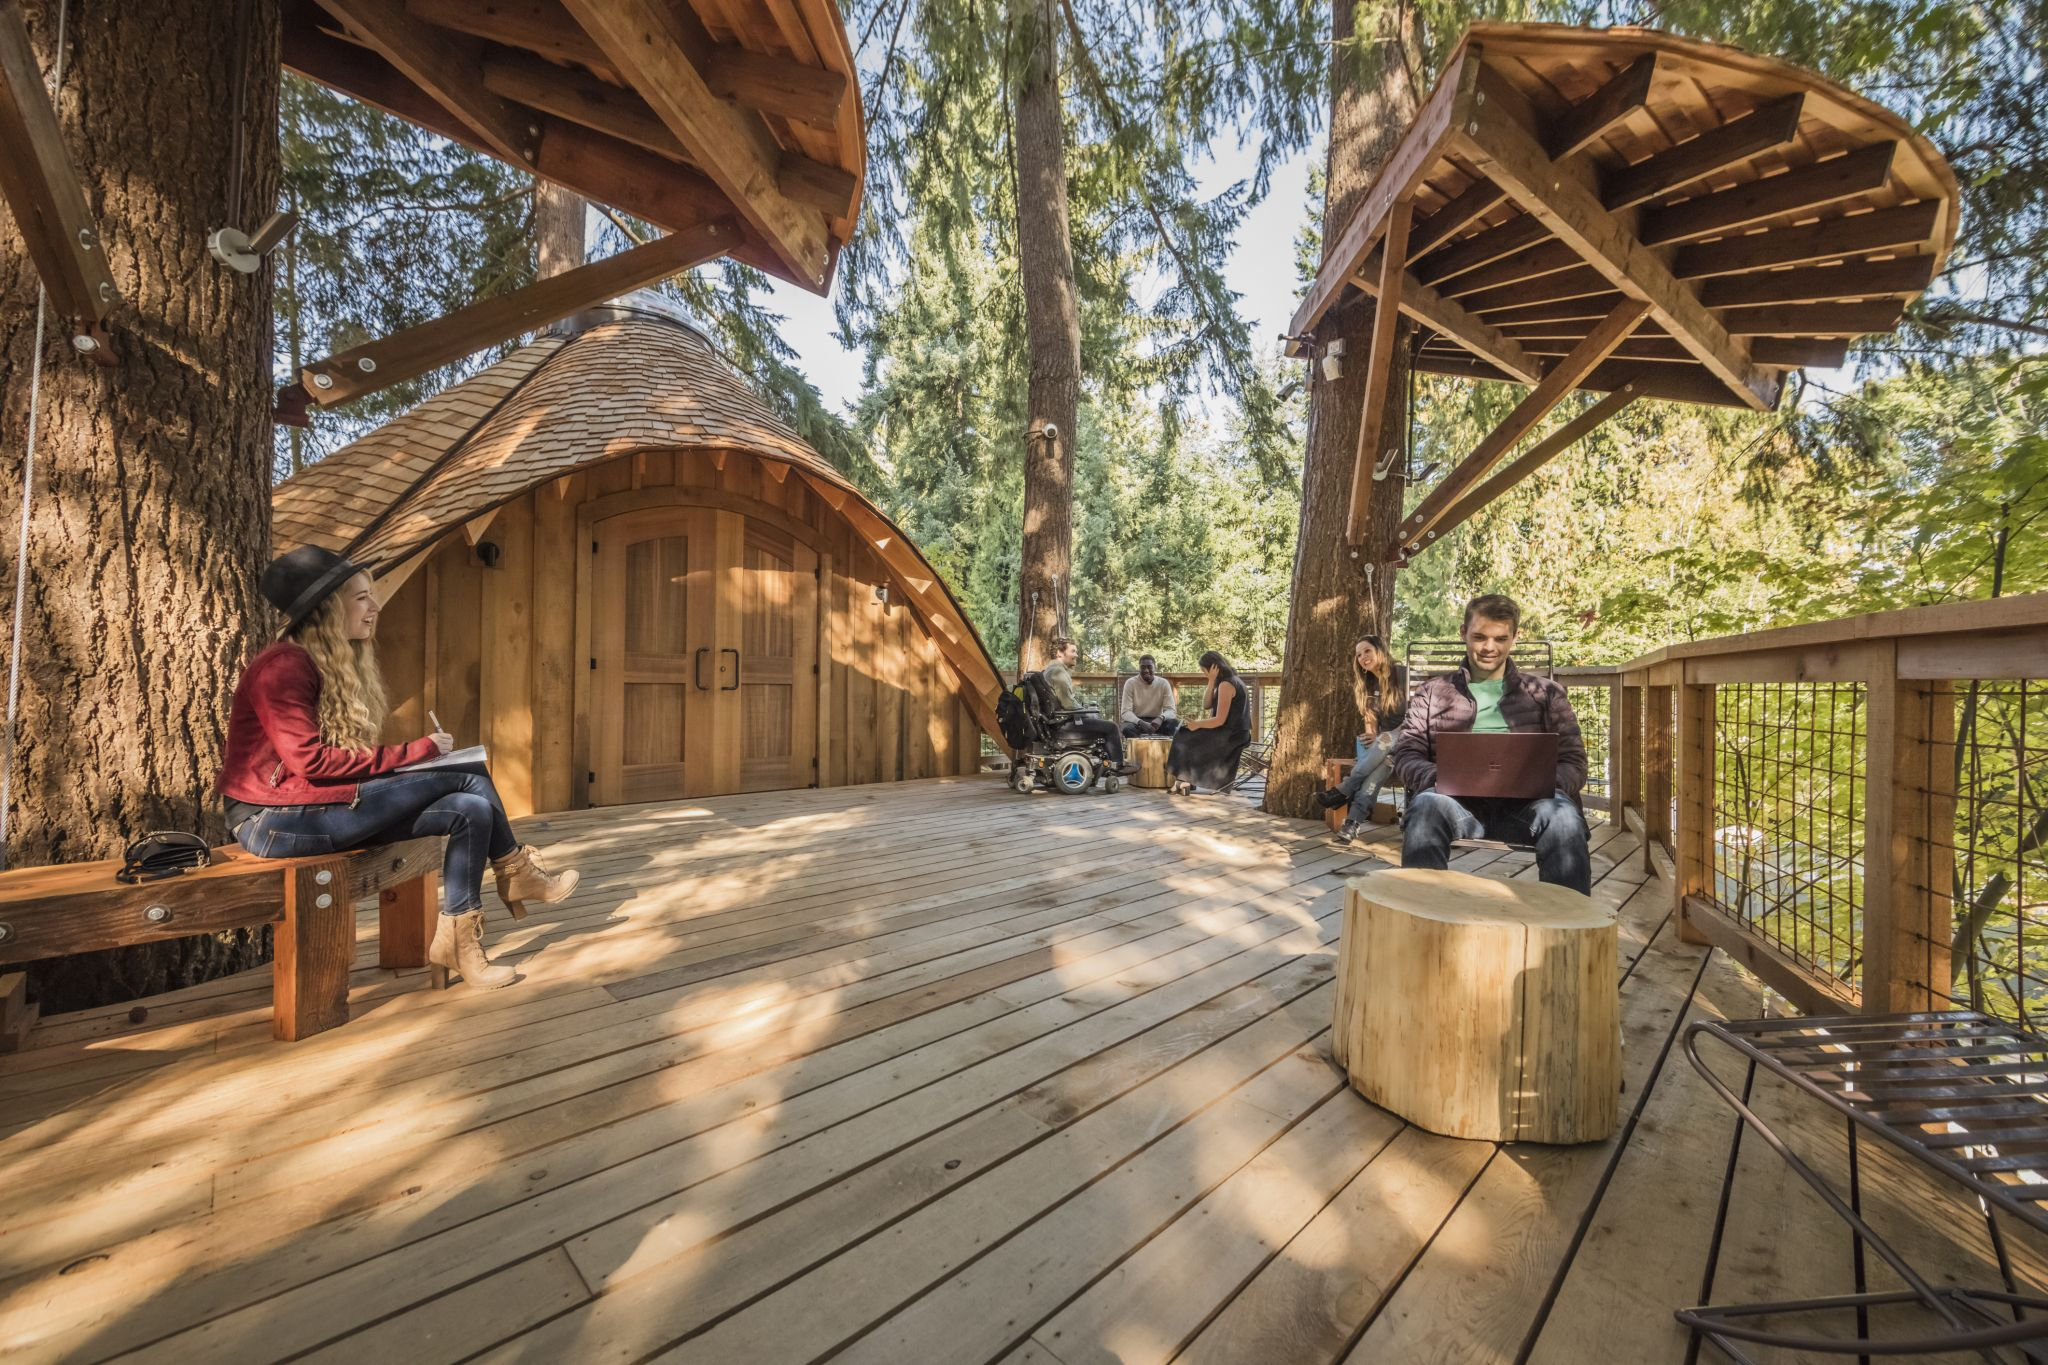 Check out Microsoft's new tree house meeting spaces